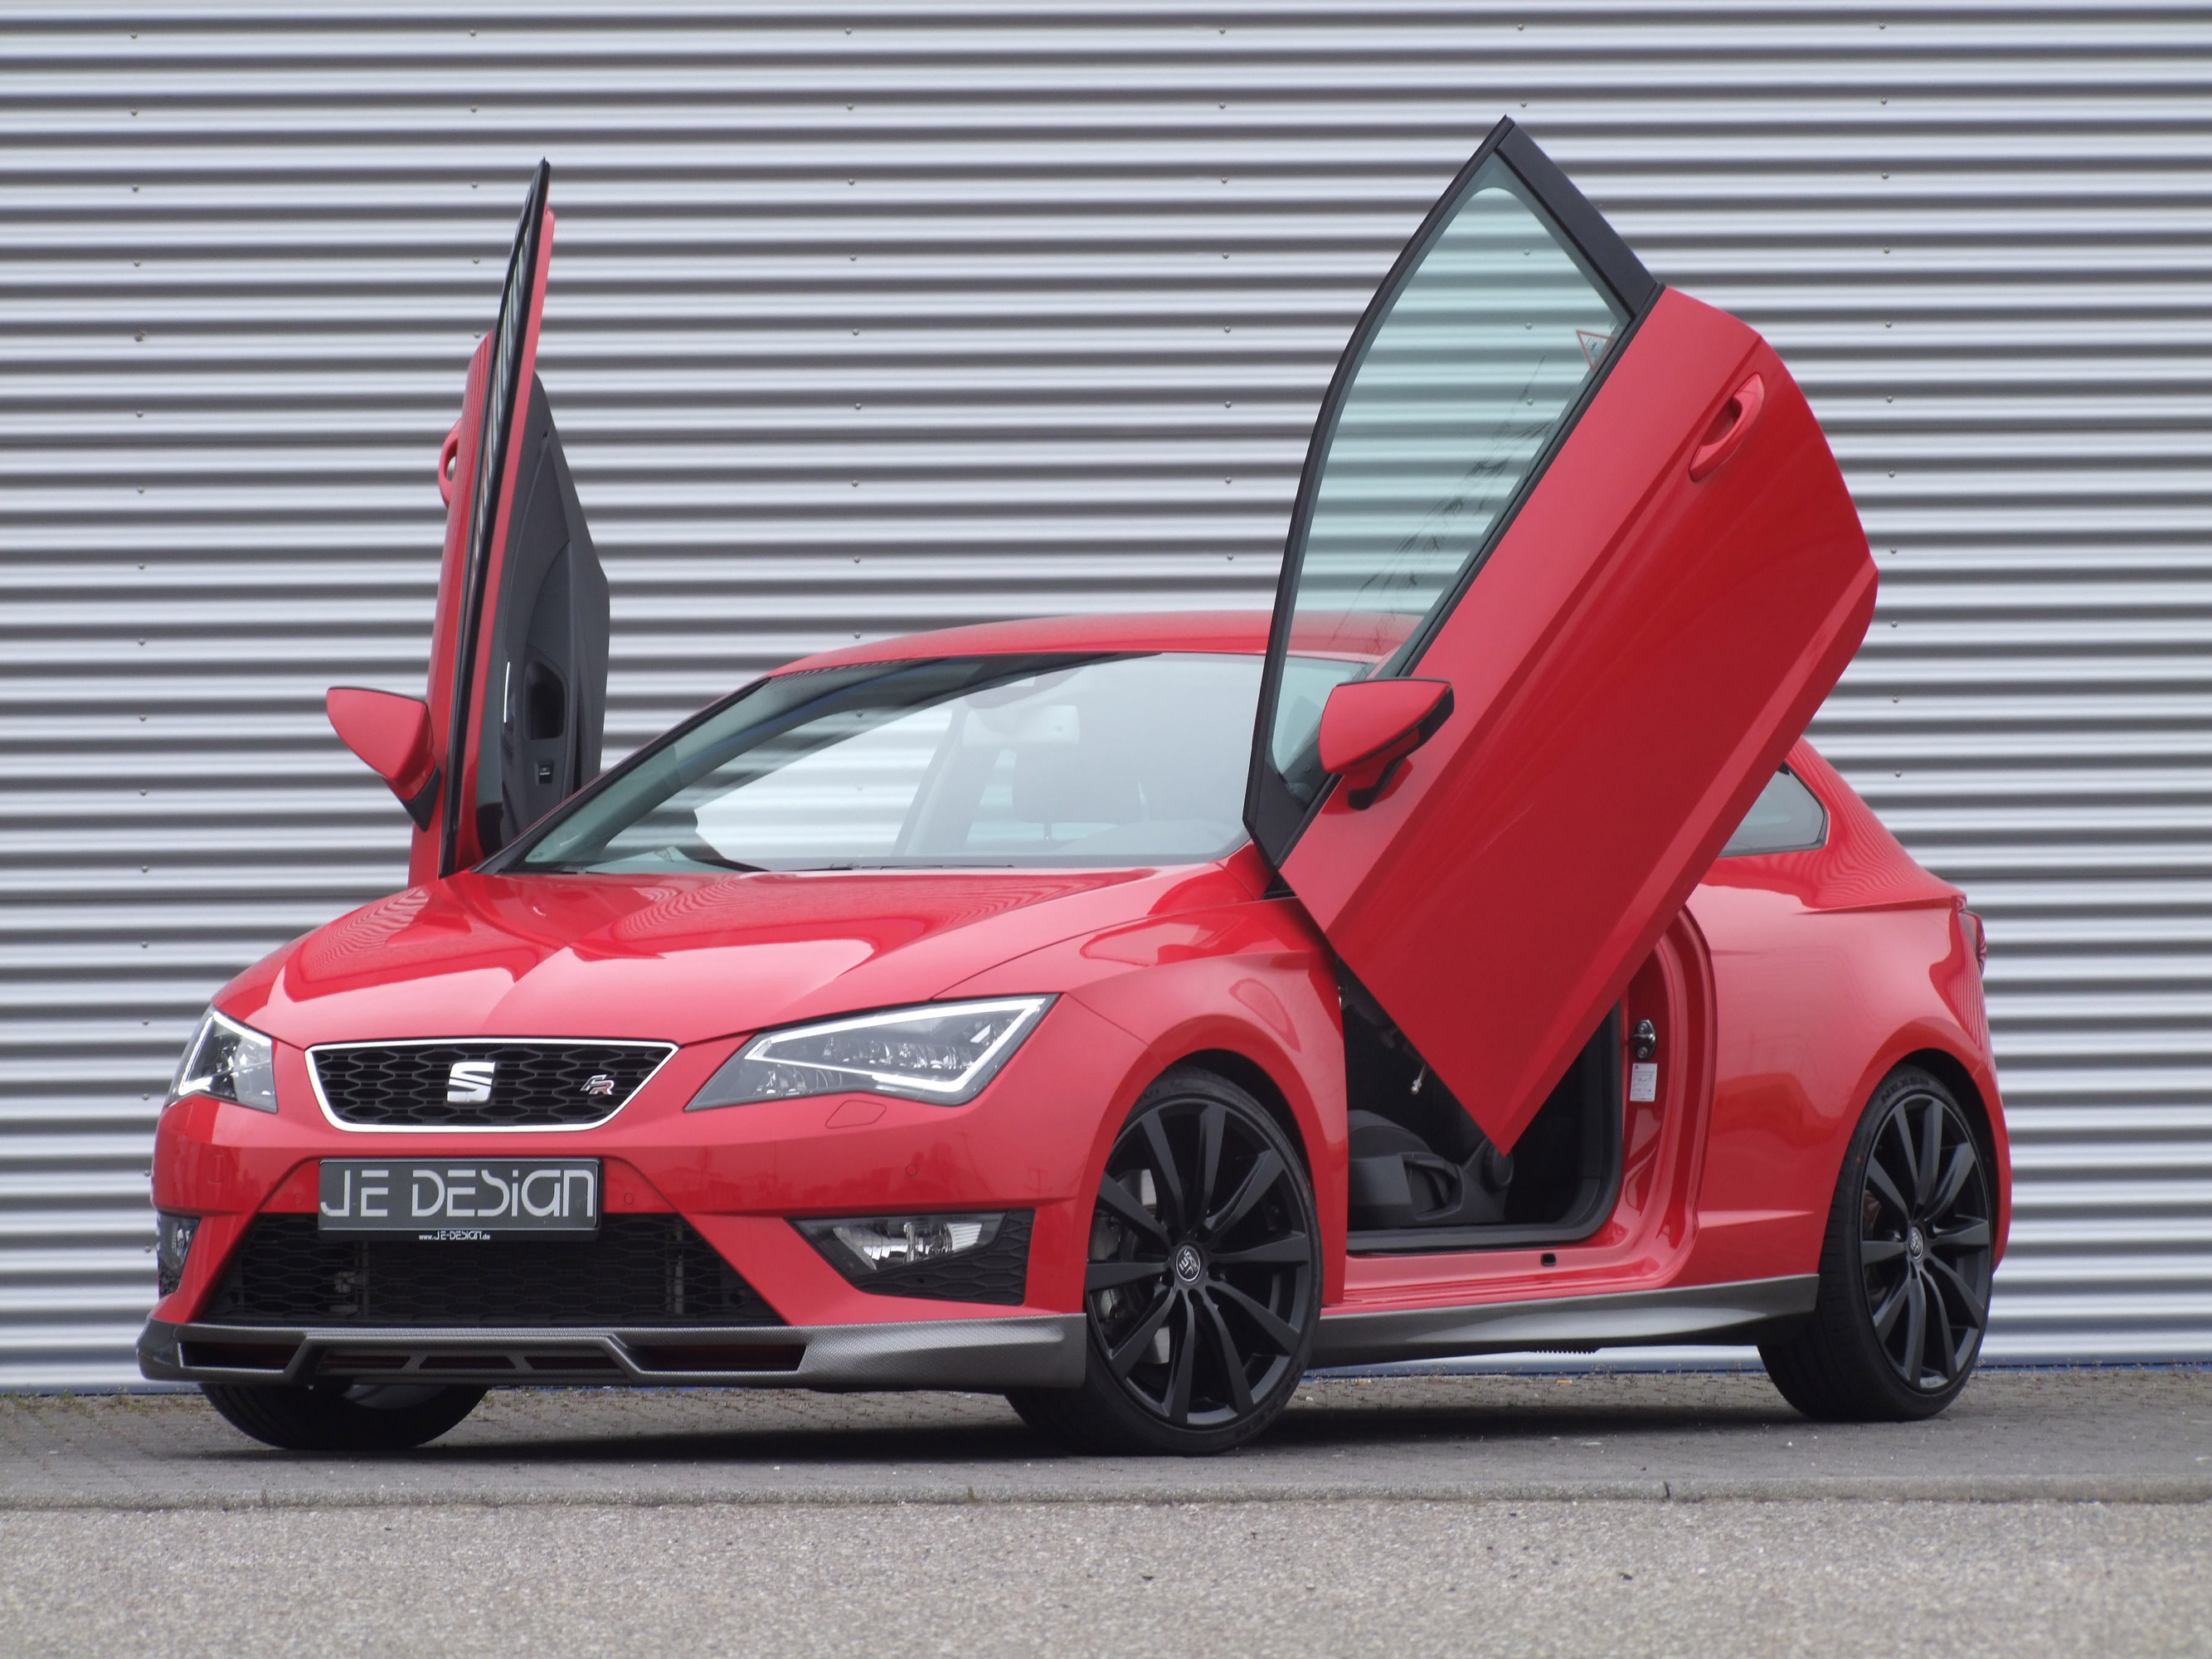 2015 je design seat leon sc fr hd pictures. Black Bedroom Furniture Sets. Home Design Ideas